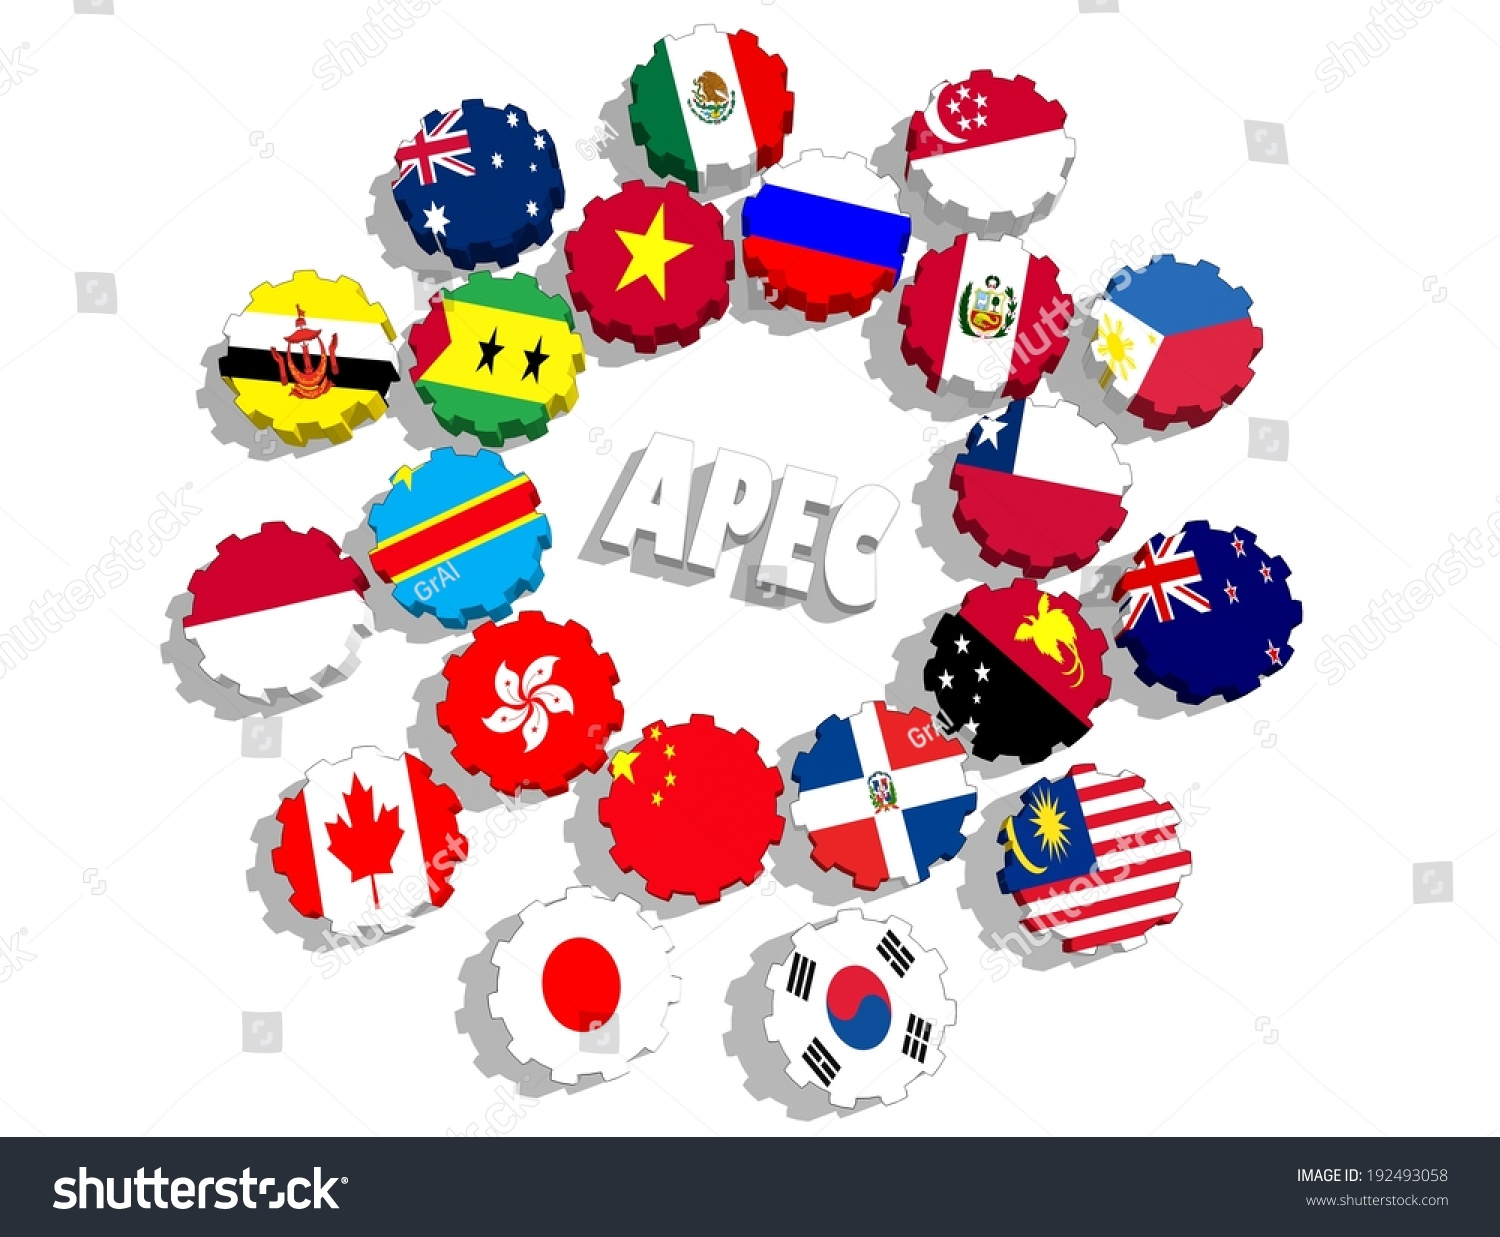 map out multiple addresses with Stock Photo Apec Asia Pacific Economic Cooperation Members Flag On Gears on Stock Vector Rockford Illinois Area Map additionally Stock Photo Apec Asia Pacific Economic Cooperation Members Flag On Gears as well Stock Vector Angola Province Cabinda Map as well Stock Vector Film Reel Icon With Colorful Tape On White Background also Stock Vector Slovakia Political Map With Capital Bratislava National Borders Important Cities Rivers And.